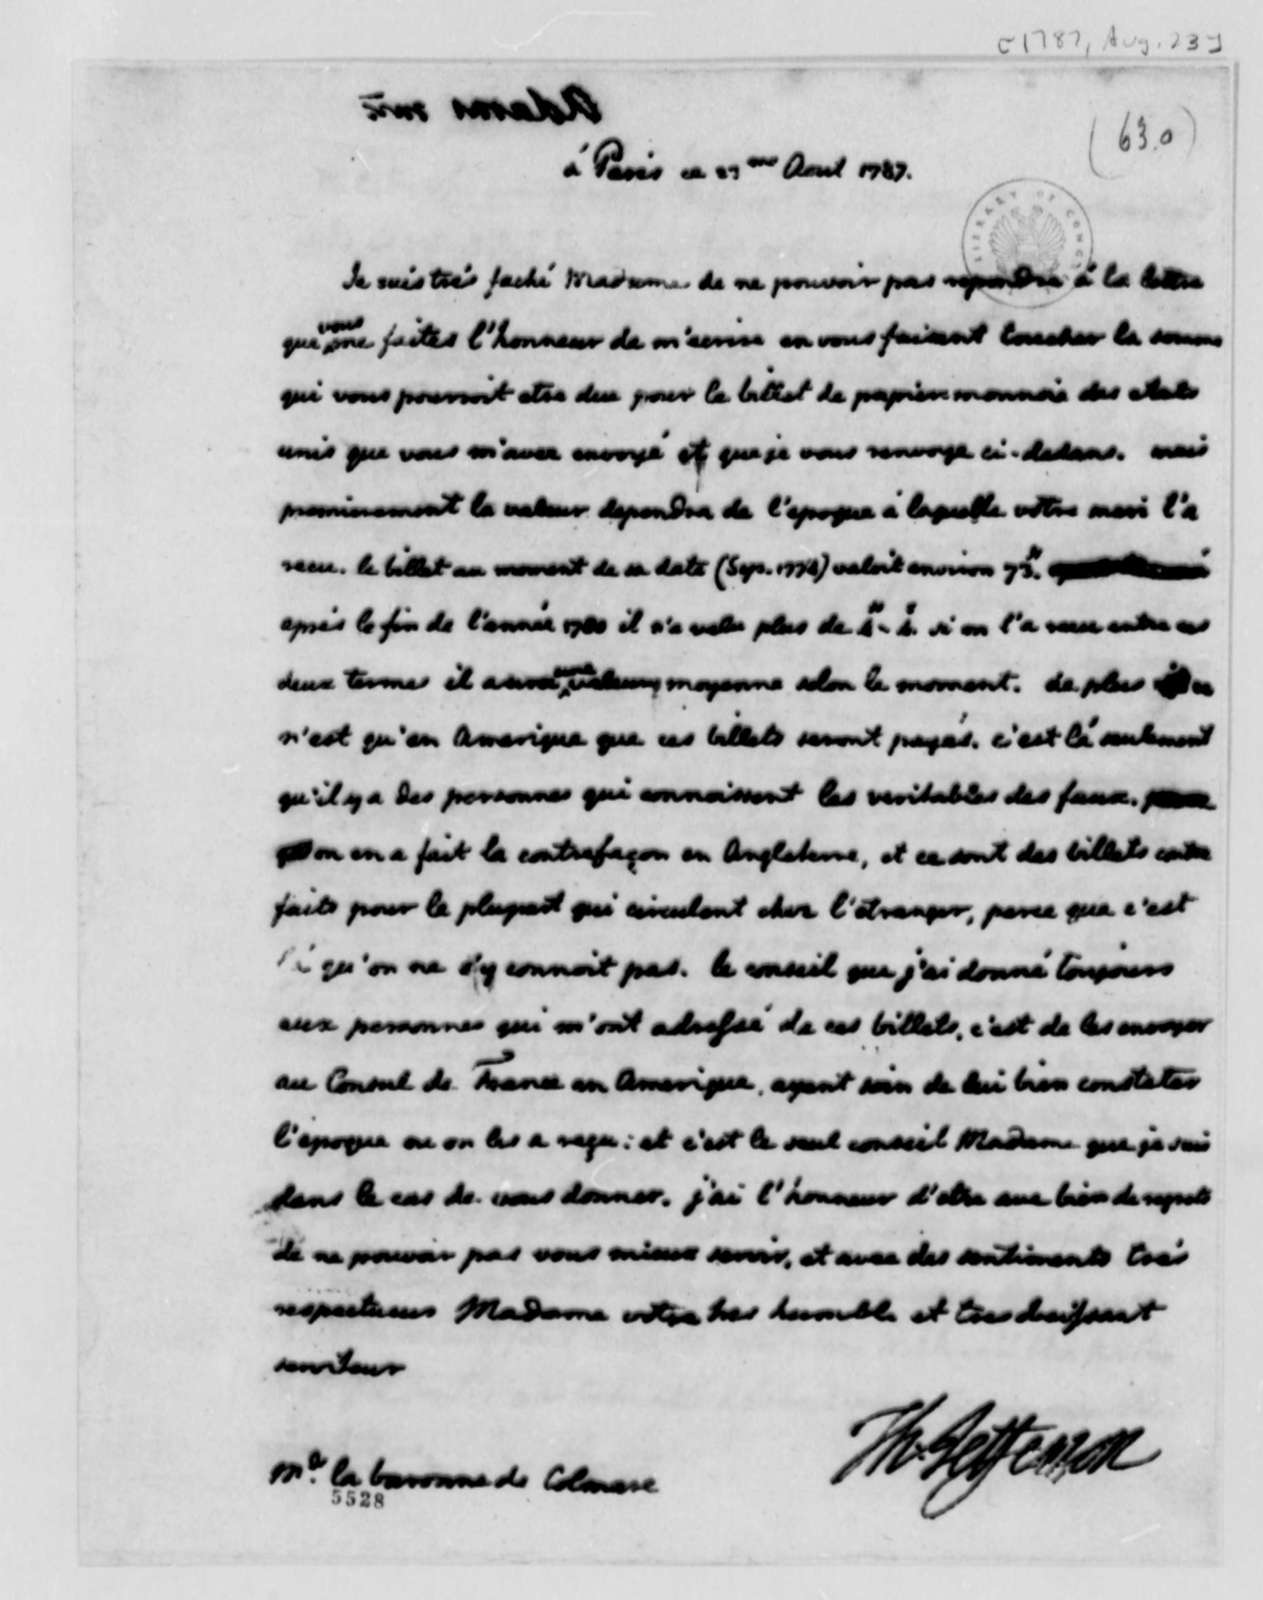 Thomas Jefferson to Baroness de Colmare, August 23, 1787, in French